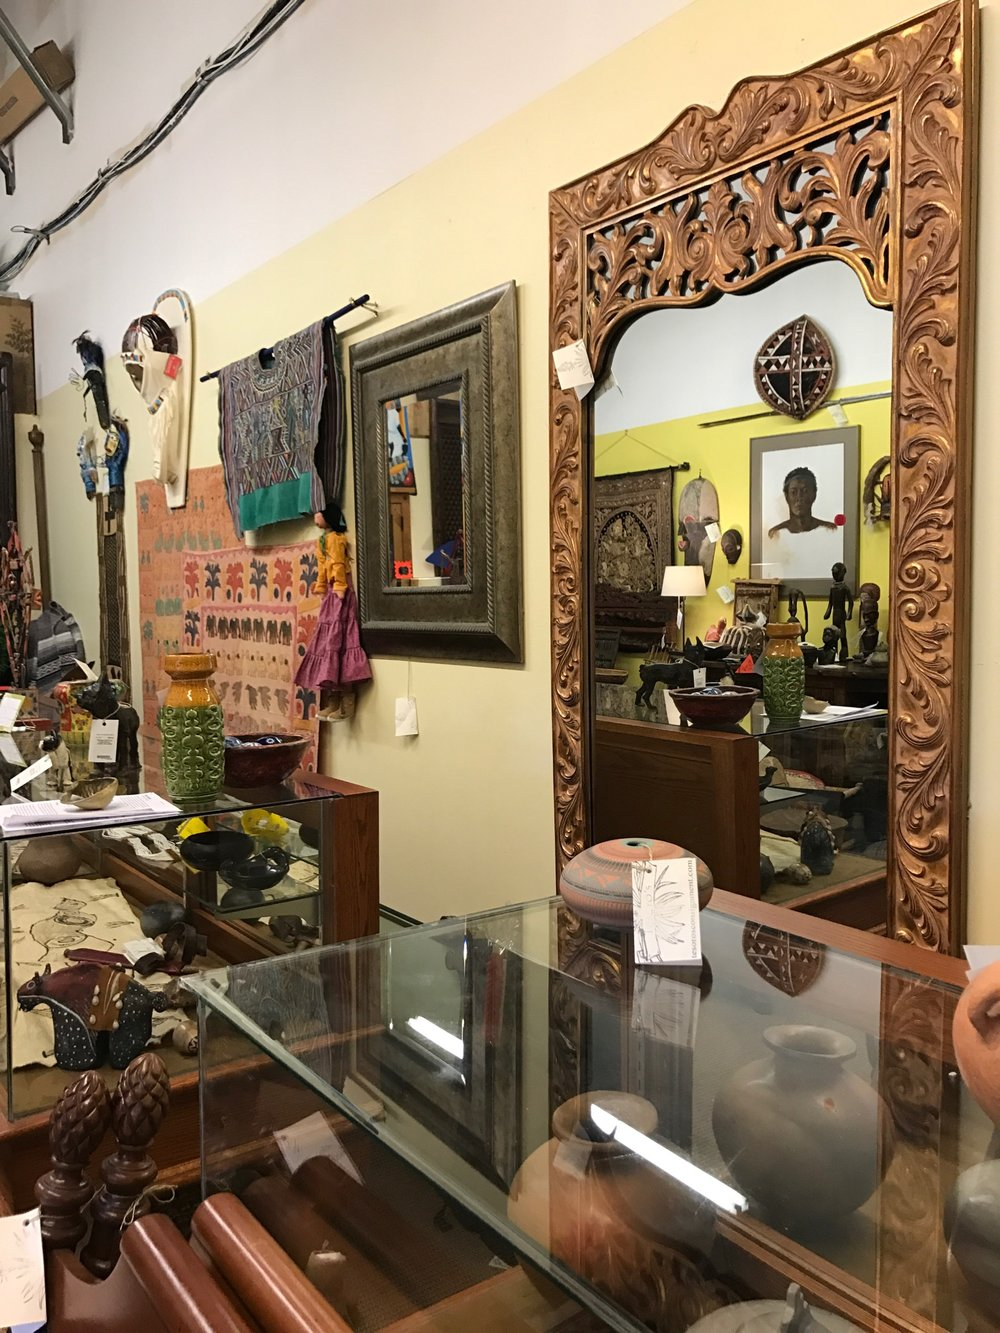 Furniture consignment stores in santa fe nm - A Little Snippet About Our Store By Deborah Stone Santa Fe Is A Consignment